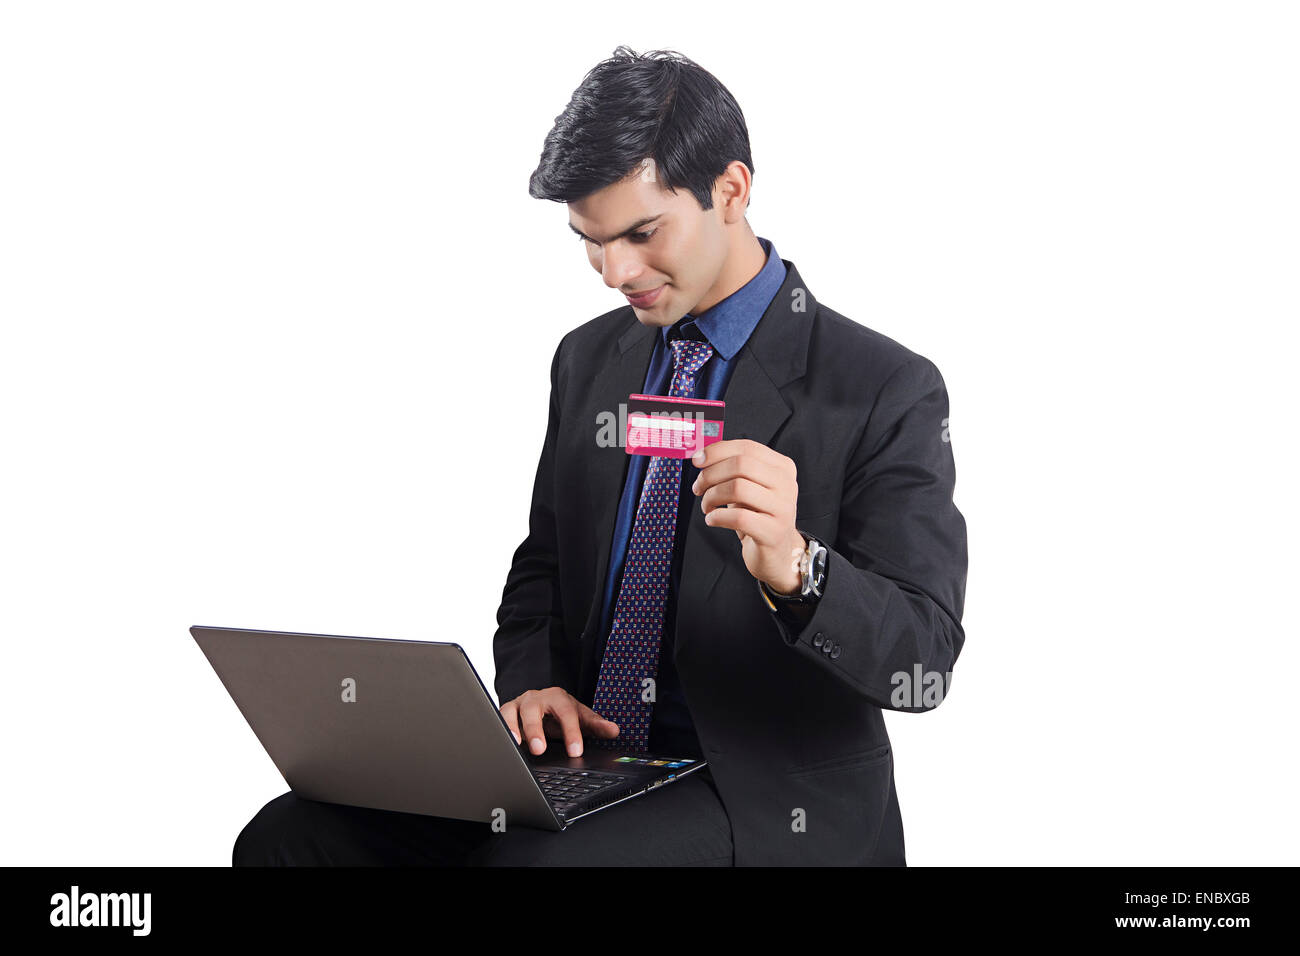 1 indian Business Man laptop Credit Card shopping - Stock Image